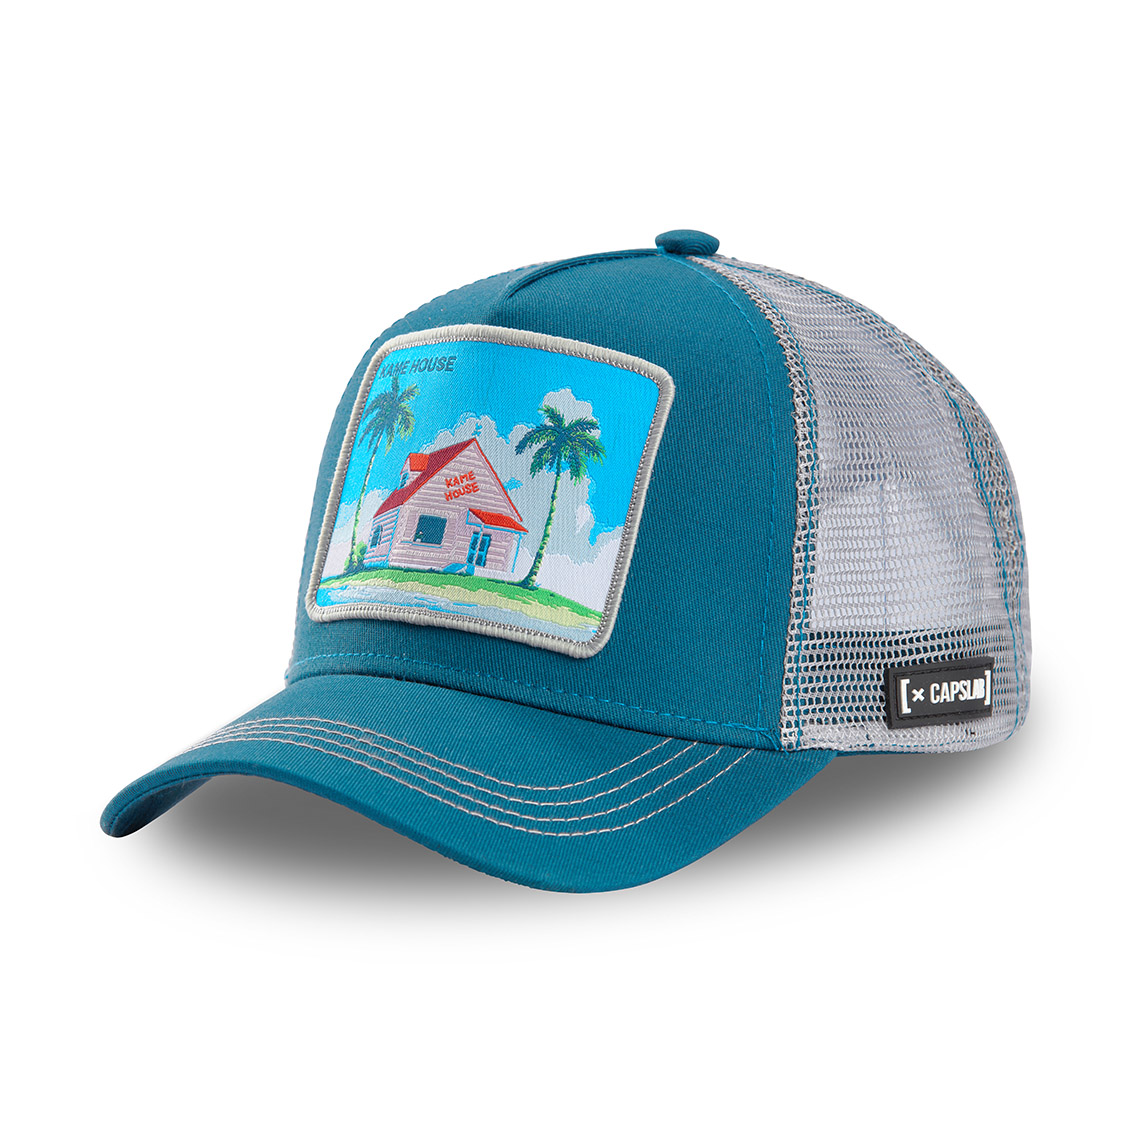 Casquette capslab dragon ball kame house bleu (photo)